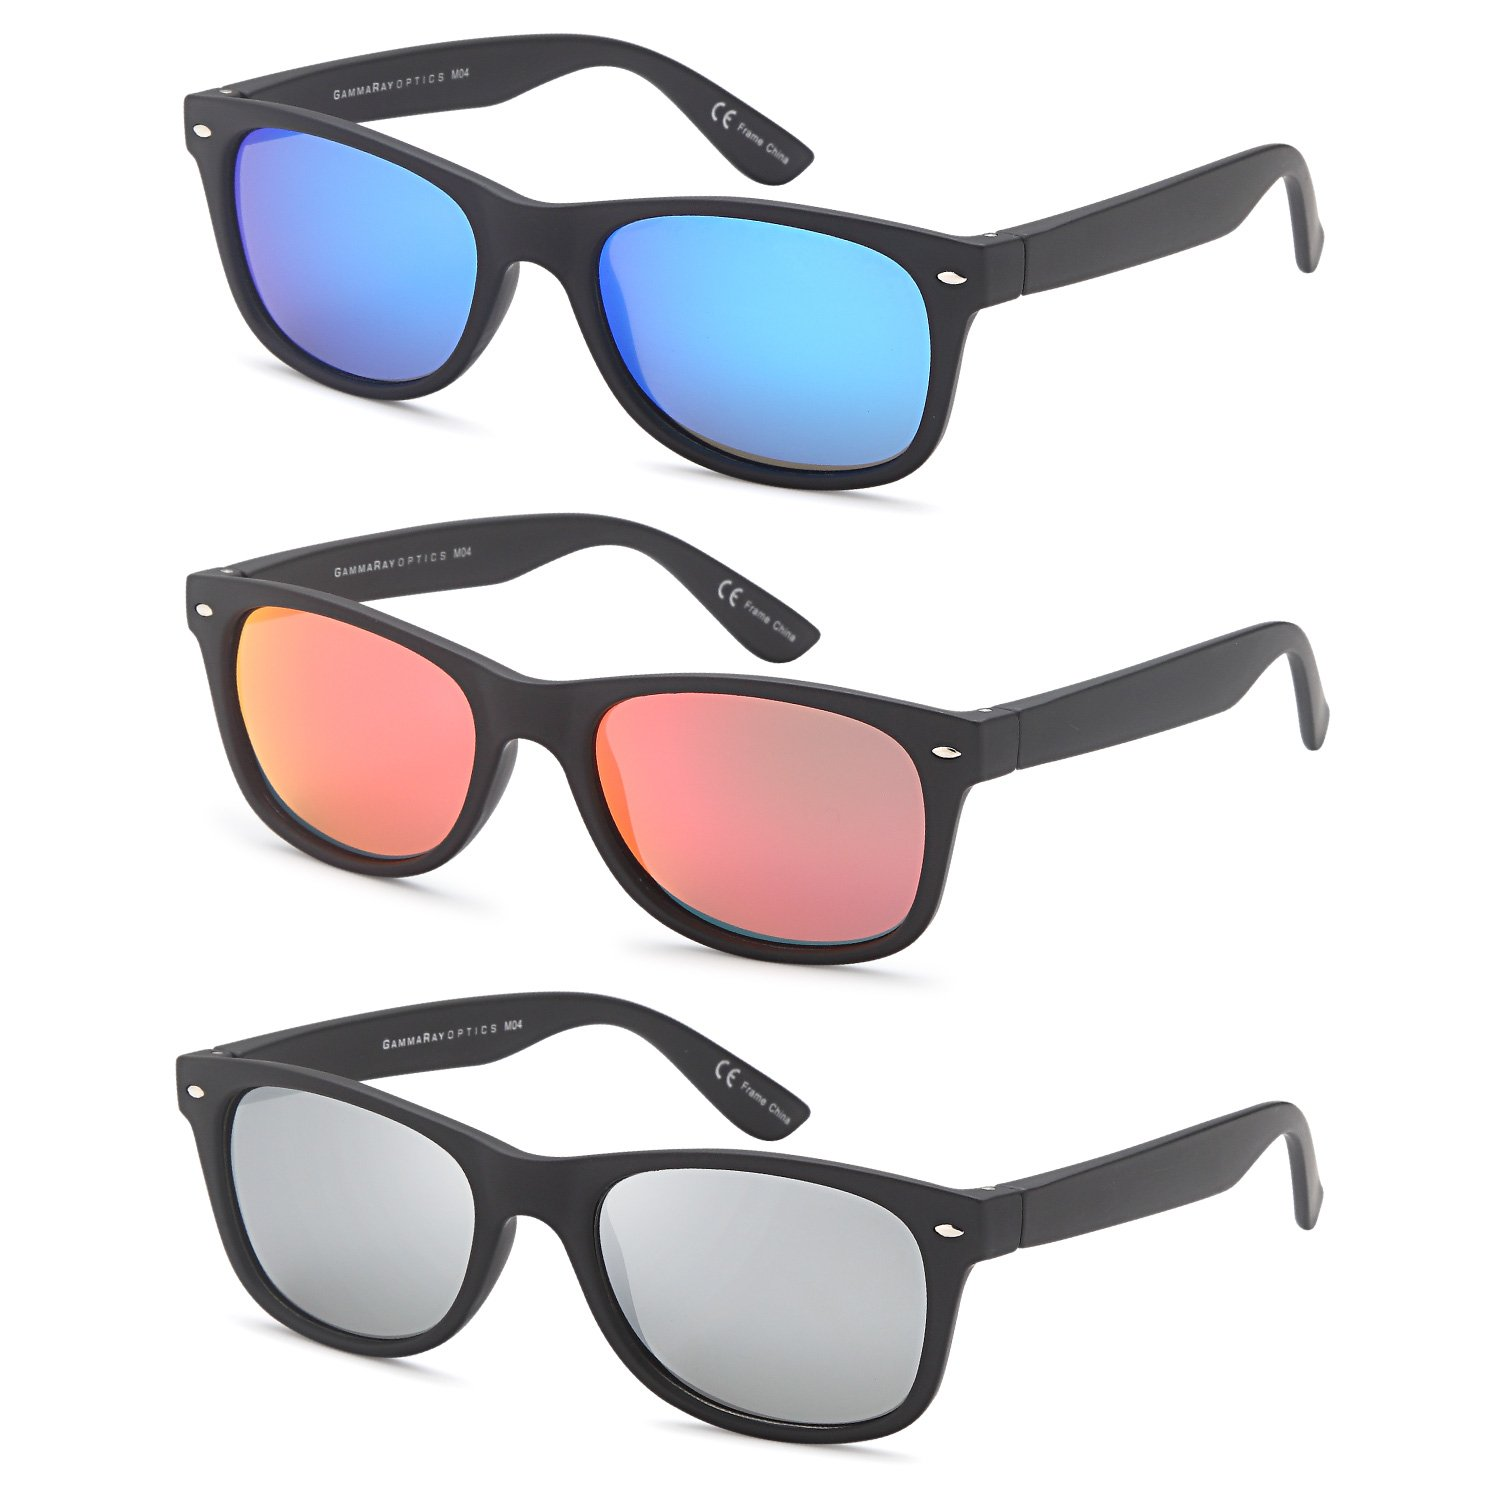 7d8c641f1b3 Amazon.com  Gamma Ray Polarized UV400 Classic Style Sunglasses with Mirror  Lens